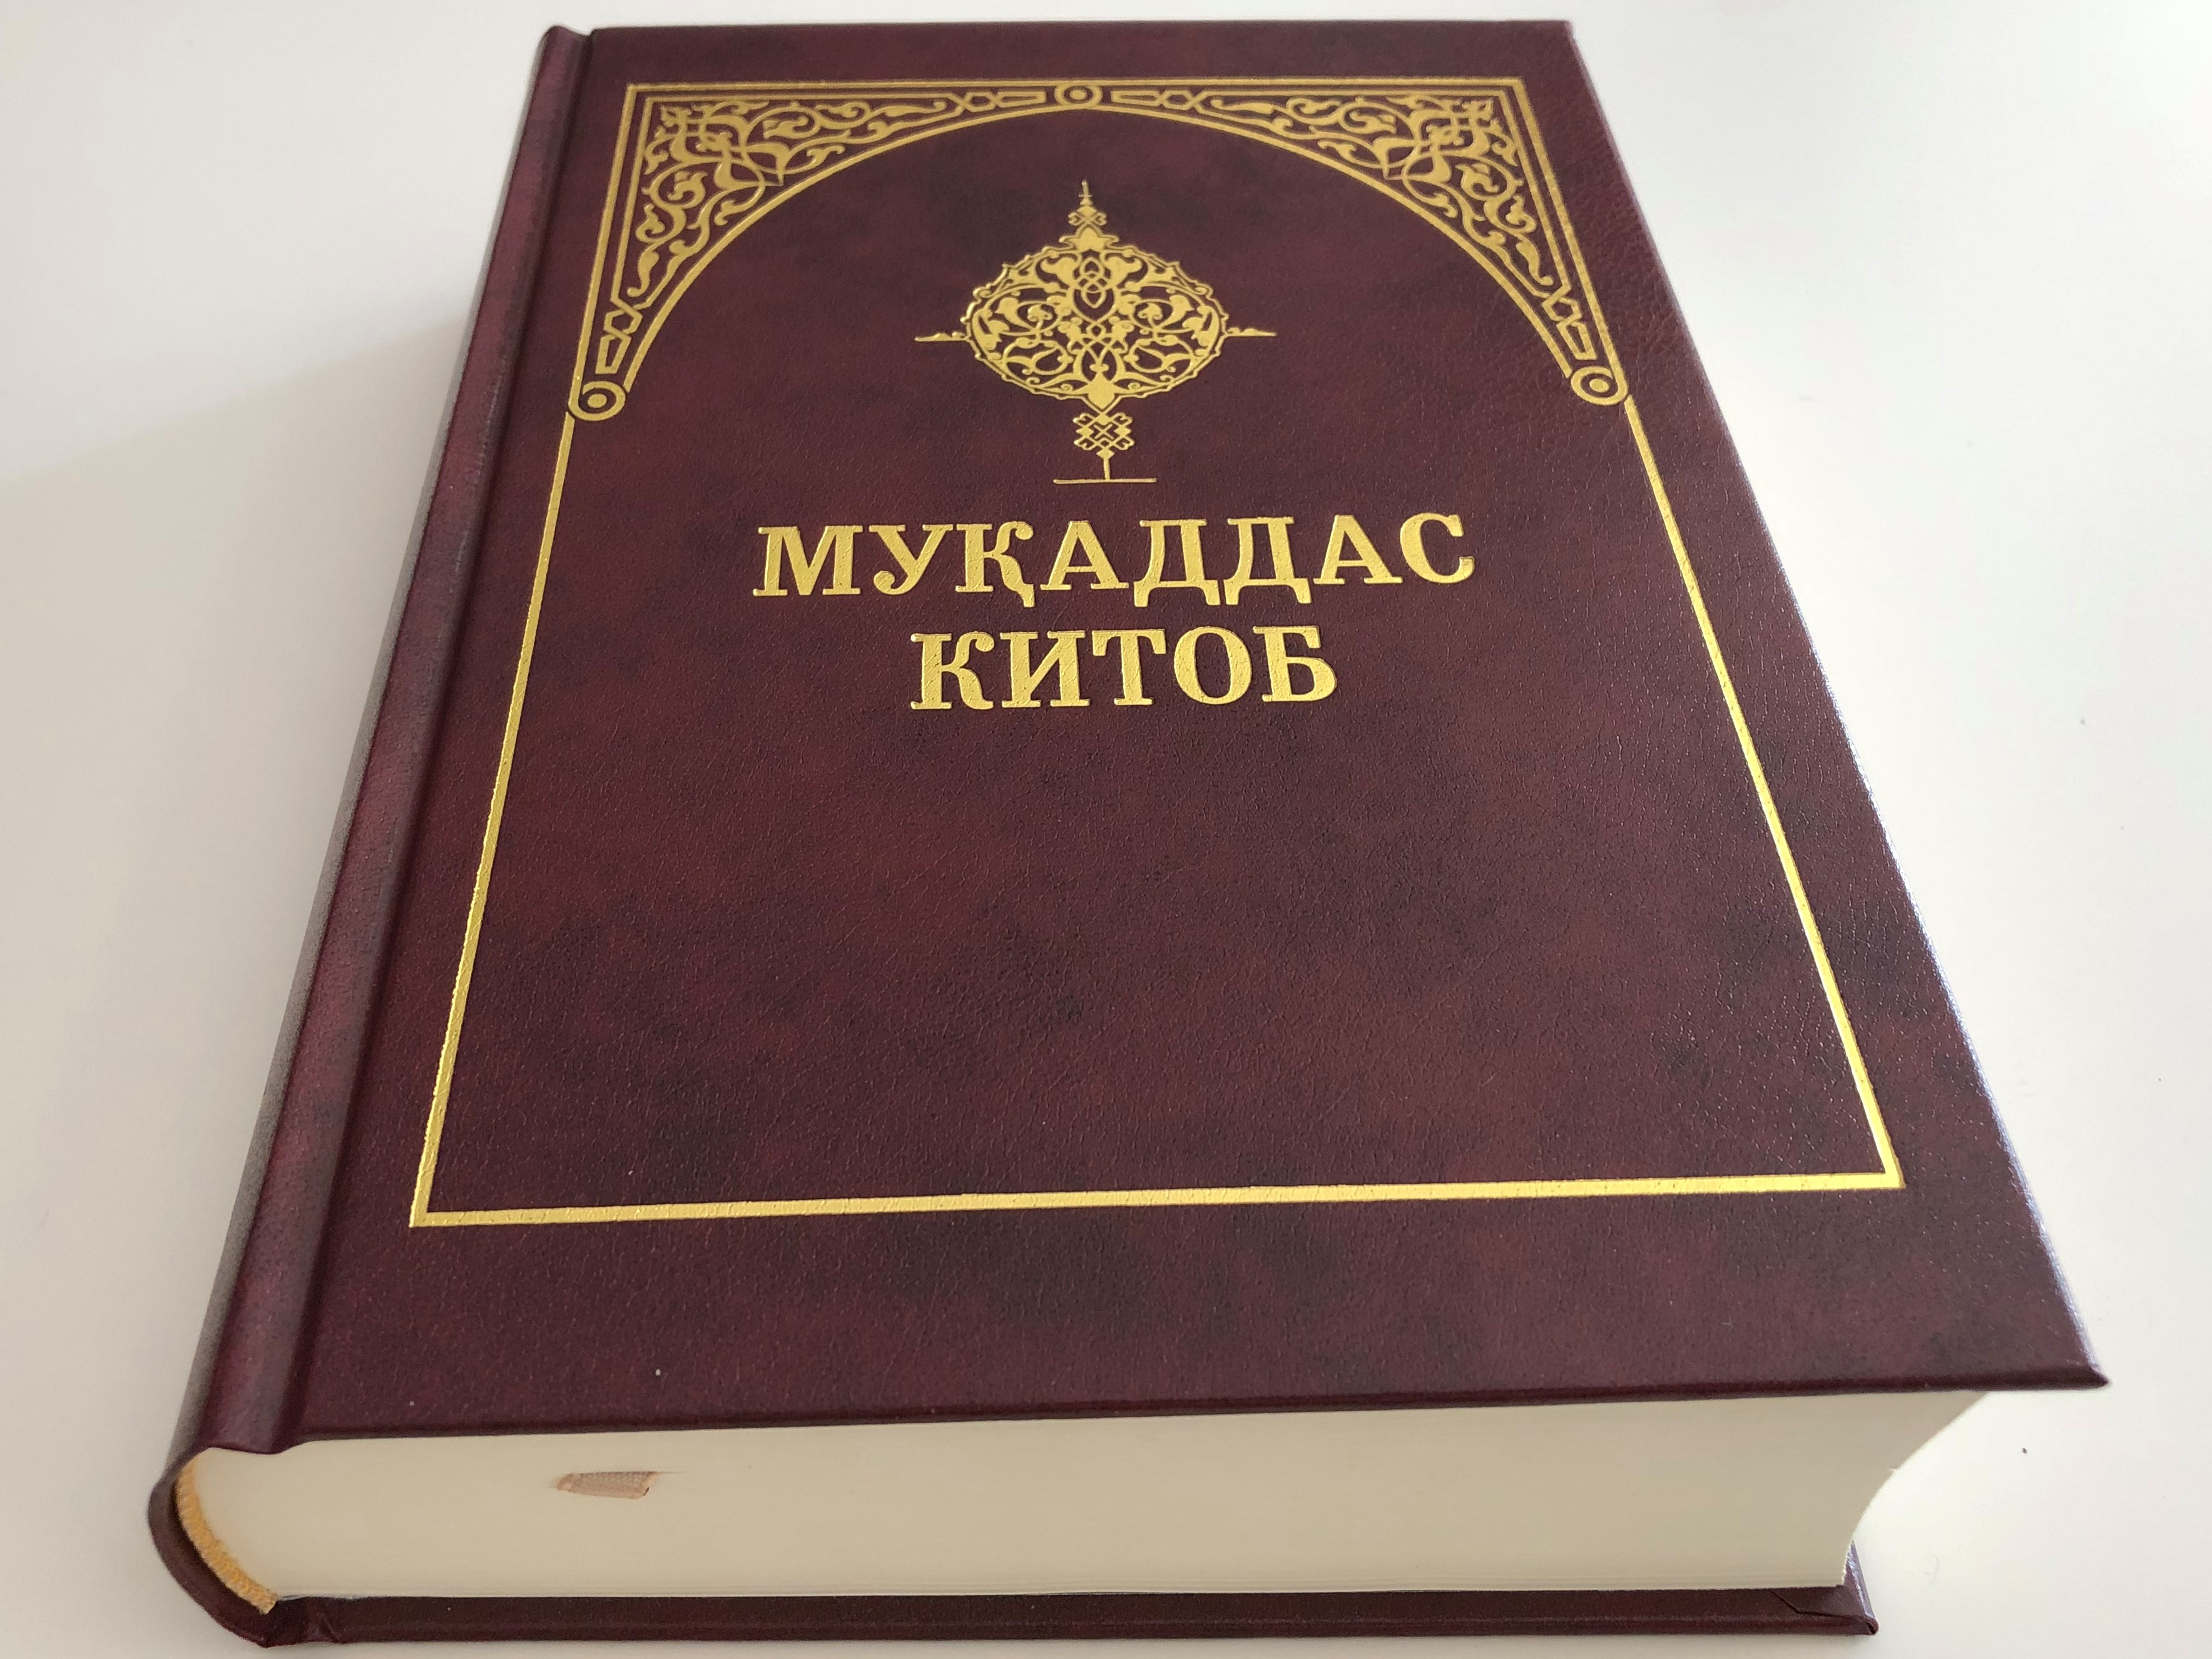 -uzbek-language-holy-bible-with-commentaries-and-nt-parallel-passage-tables-o-zbekcha-cyrillic-script-hardcover-2018-2-.jpg